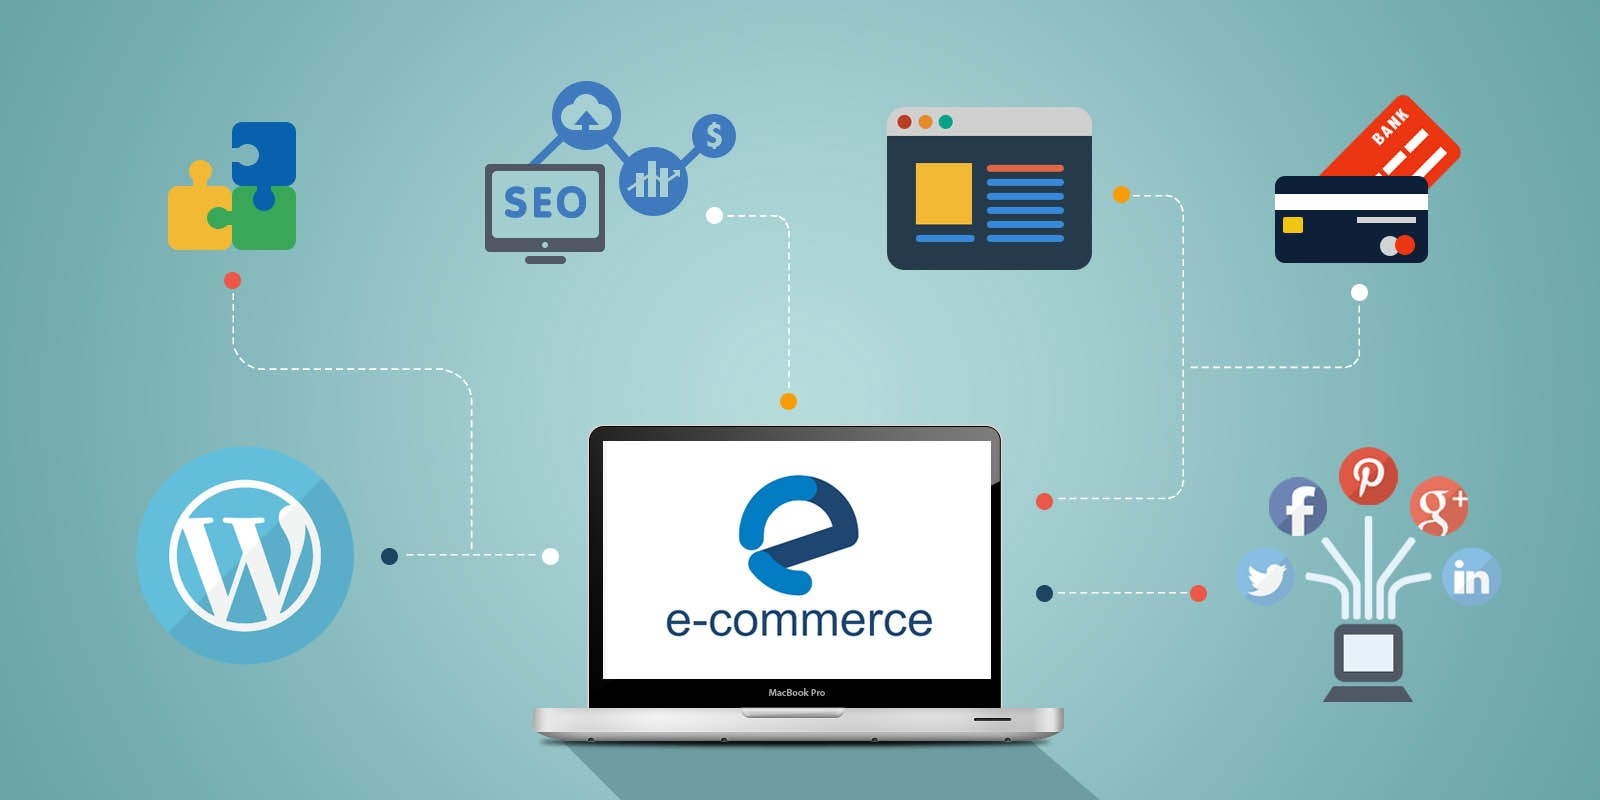 5. Evolving Role of Social Media in Ecommerce